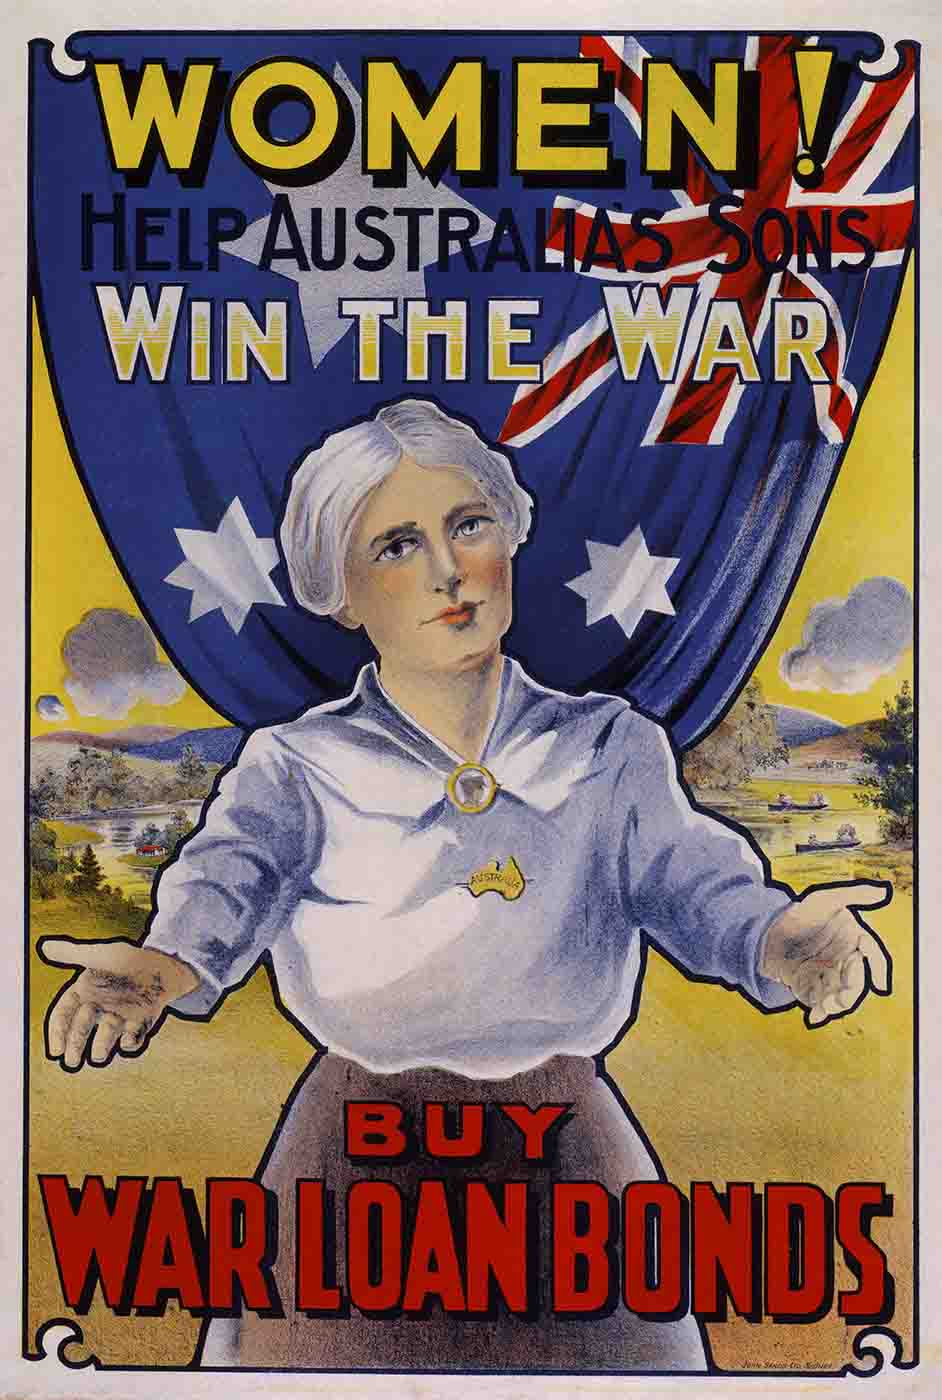 A coloured picture featuring a woman in the foreground and an Australian flag in the background. The woman has her arms outstretched to the front. The text reads 'WOMEN! HELP AUSTRALIA'S SONS WIN THE WAR. BUY WAR LOAN BONDS'. - click to view larger image